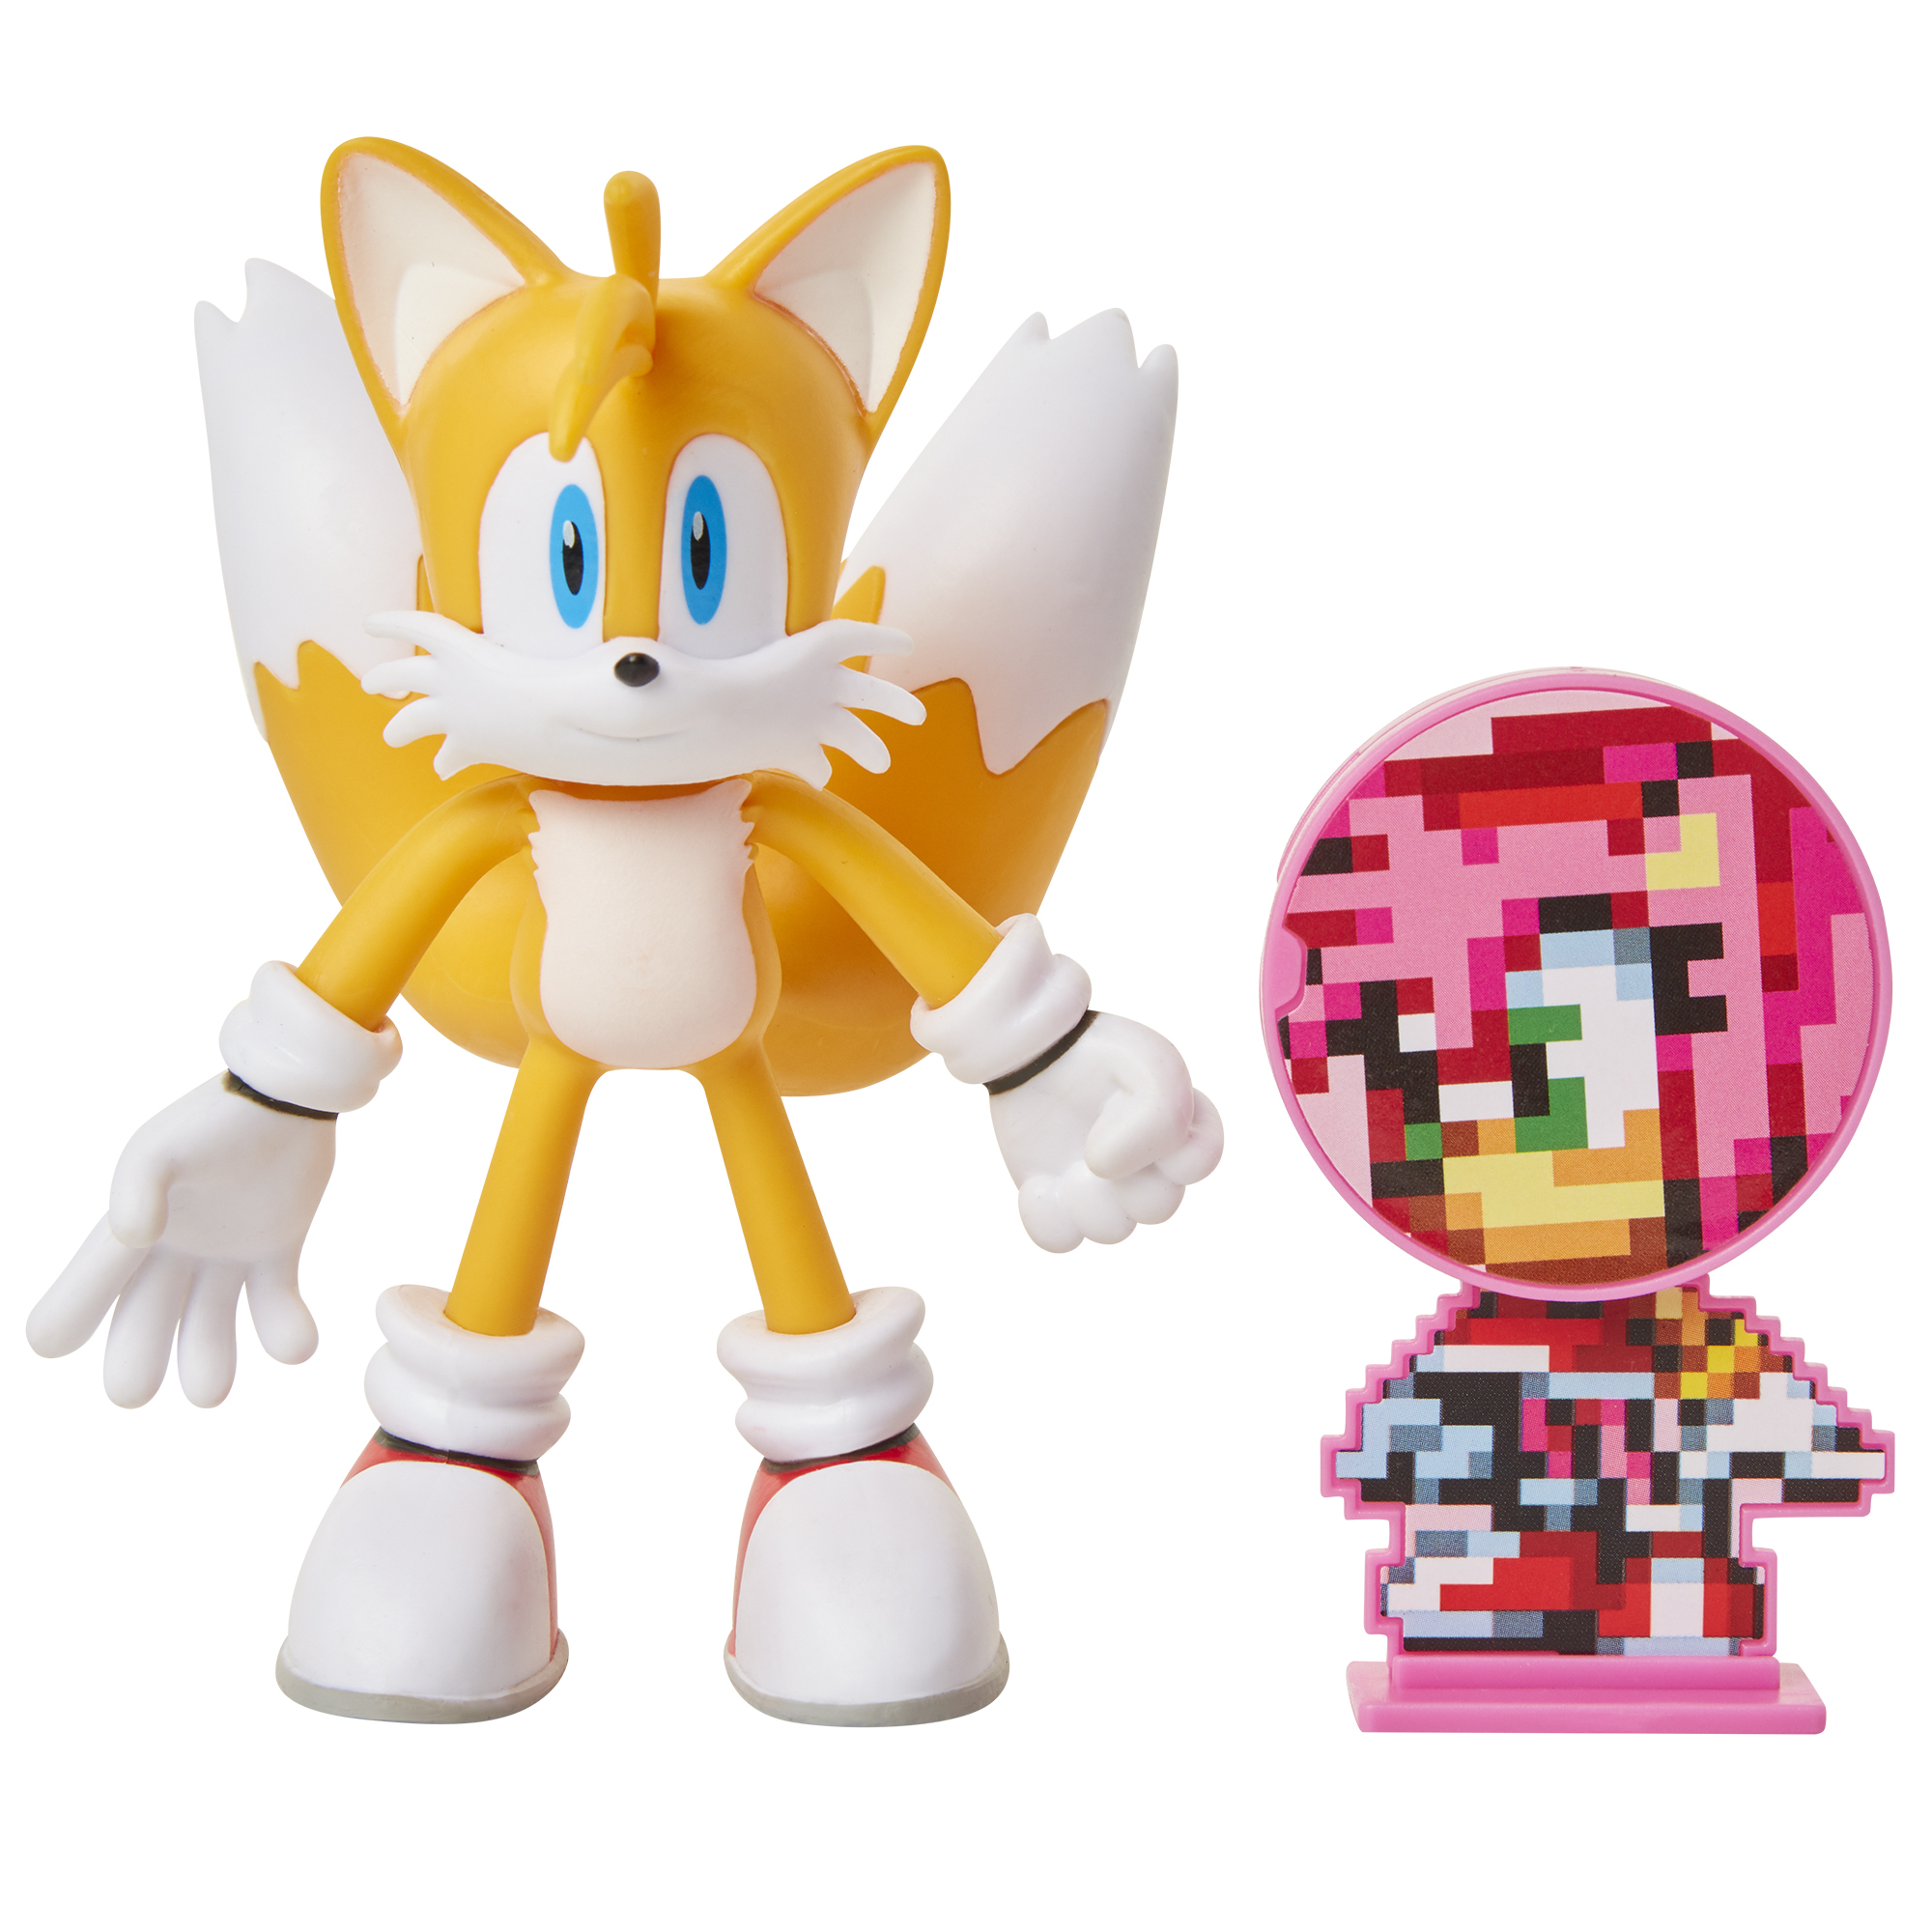 Sonic the Hedgehog - 4in Bendable Action Figures w/ accessory Wave 1 - Tails